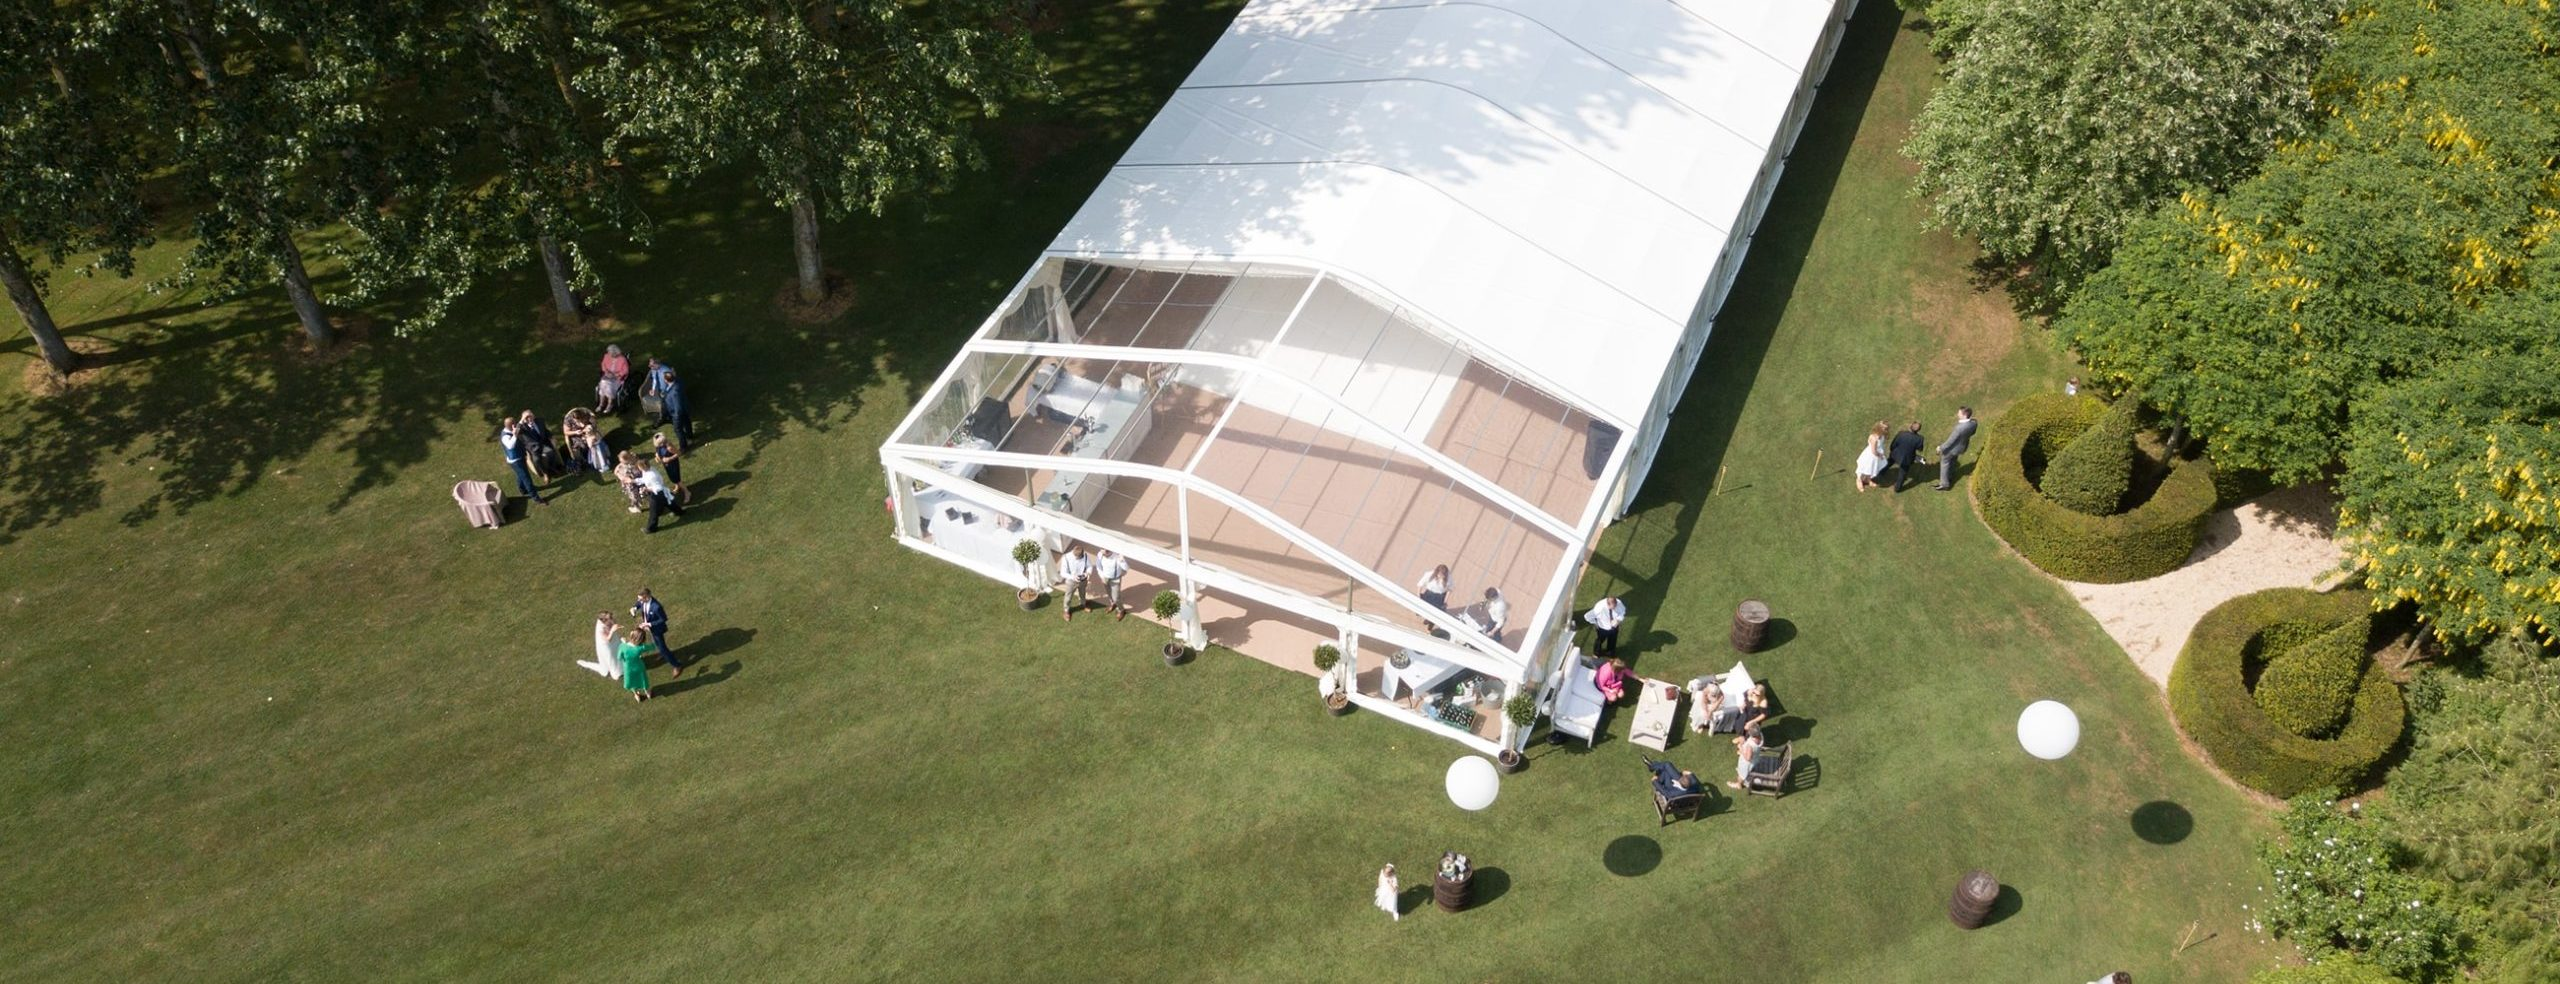 Marquee Hire Cost